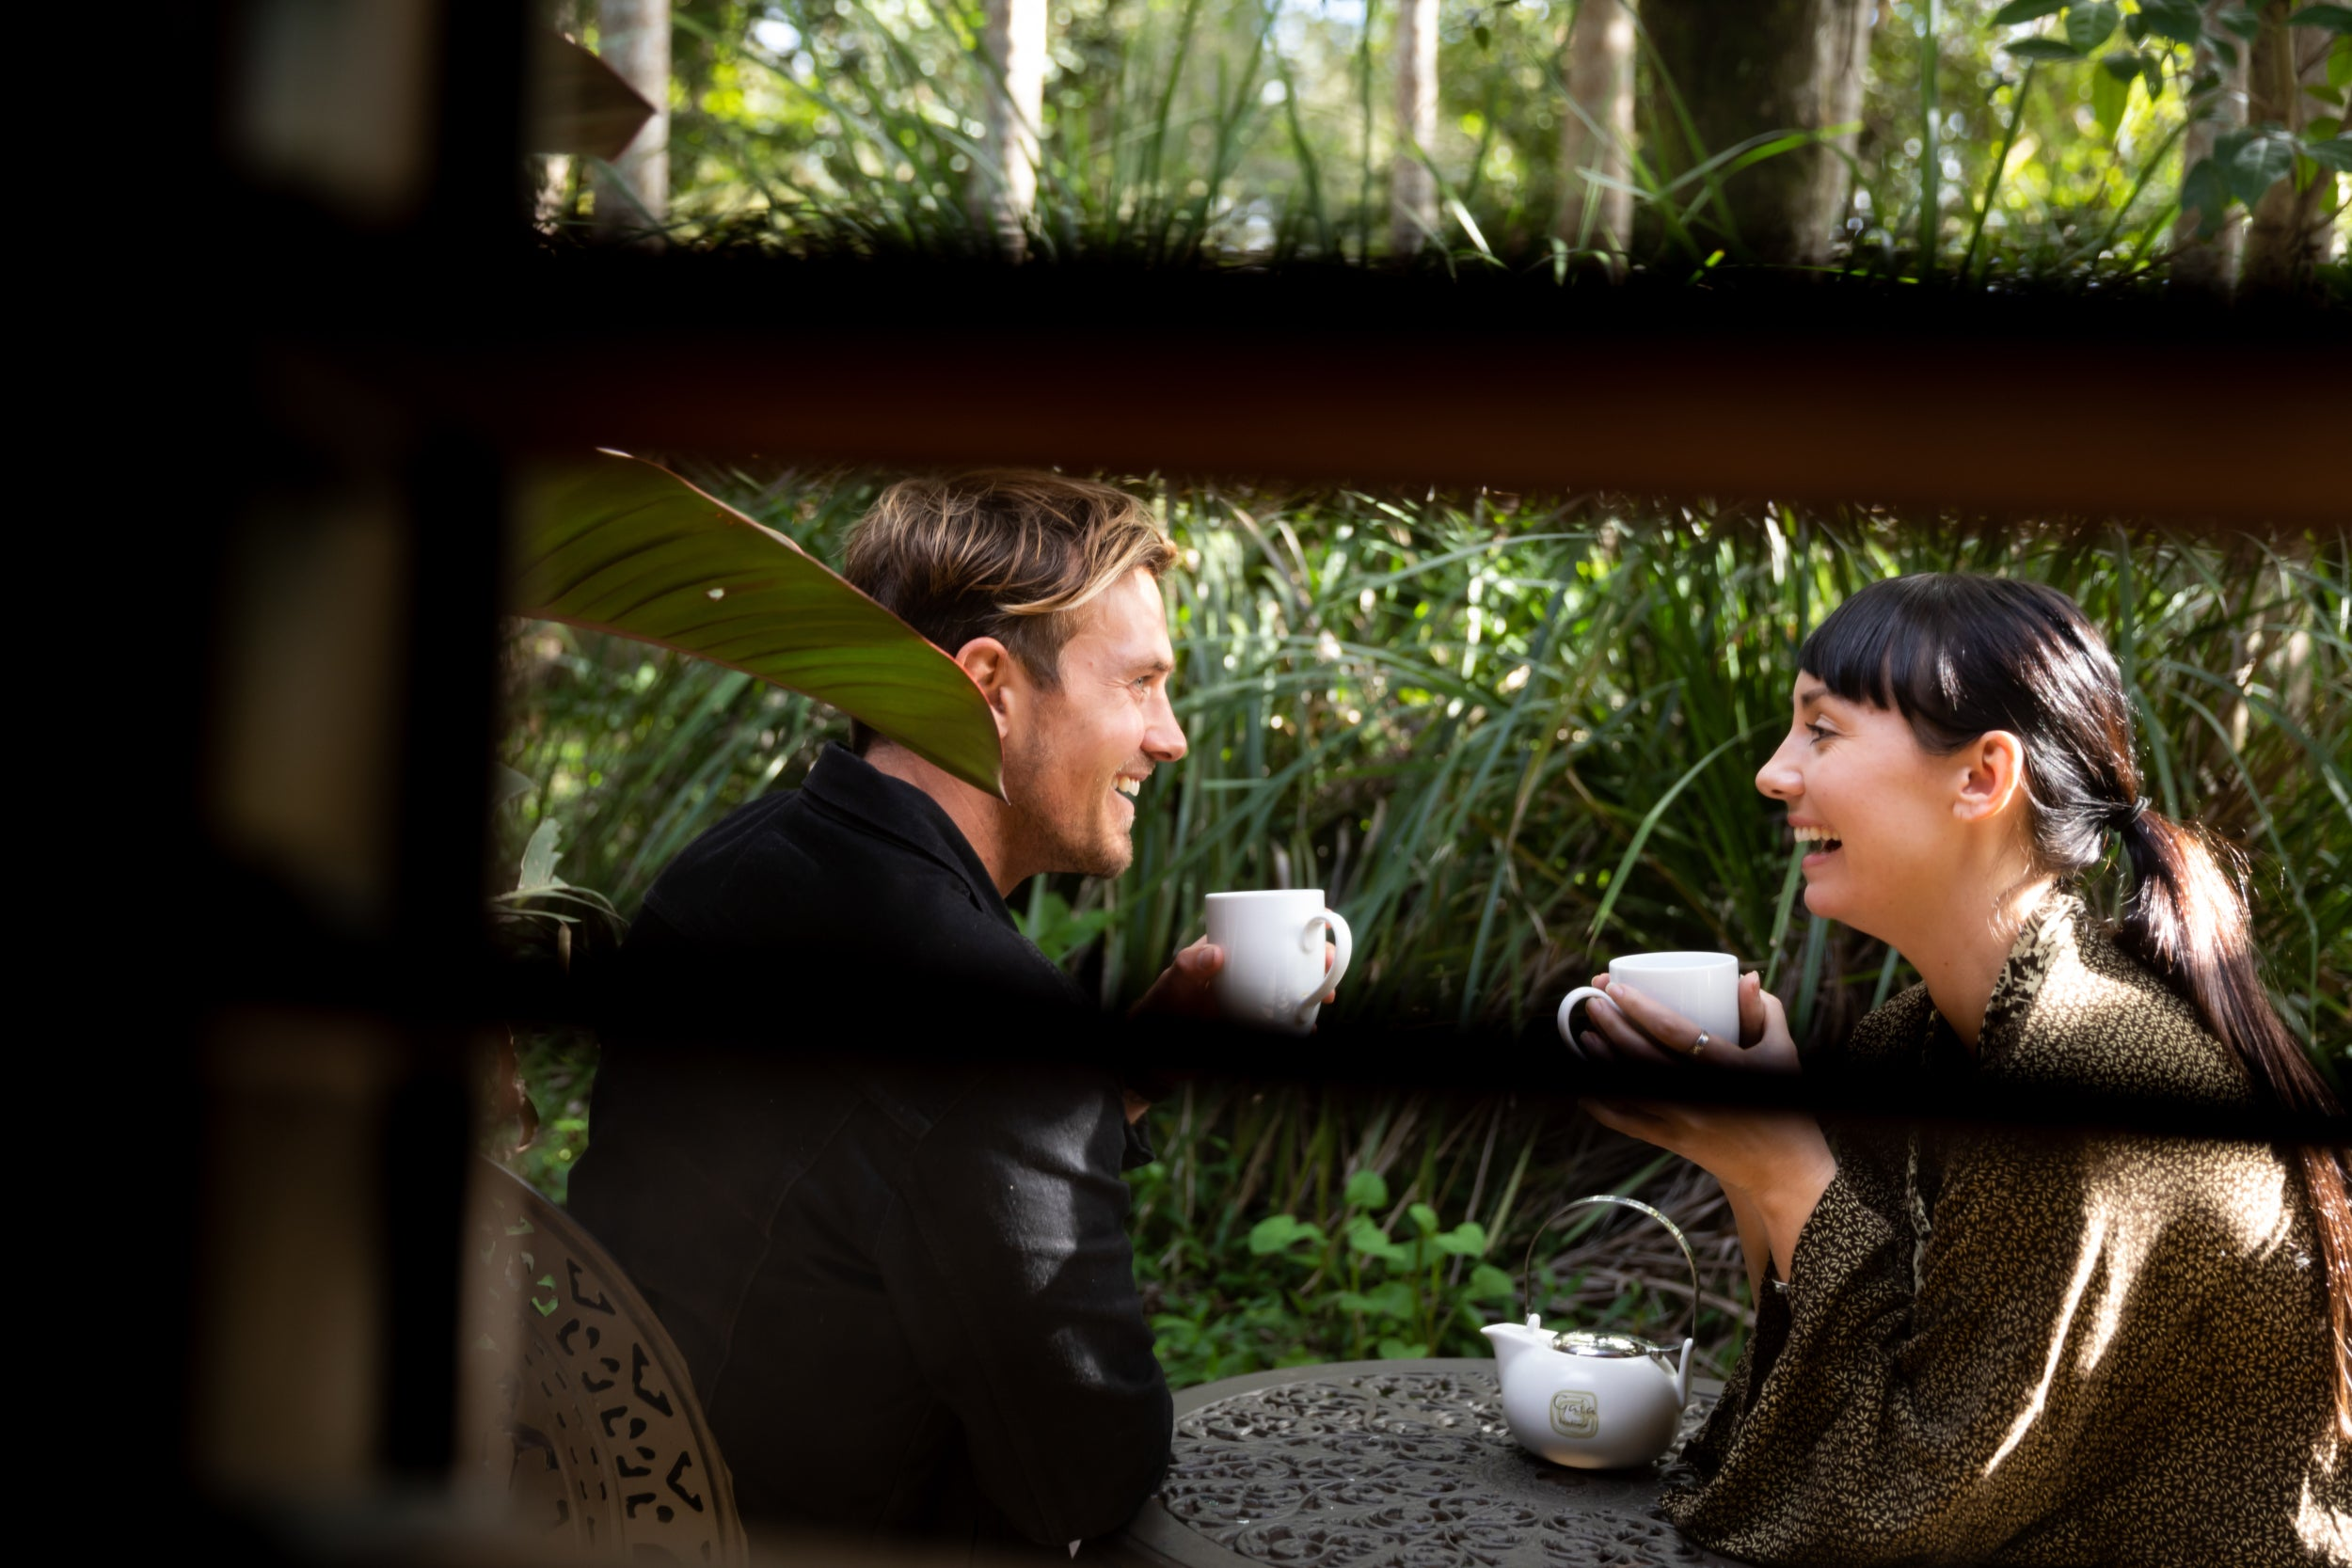 A young couple sit ourdoors & hace coffee & smile at each other. The photo is taken through a window lookling at them. They scenery is green & lush. lifestyle photography, fashion photography, A couple drink coffee together outside their room on their honeymoon